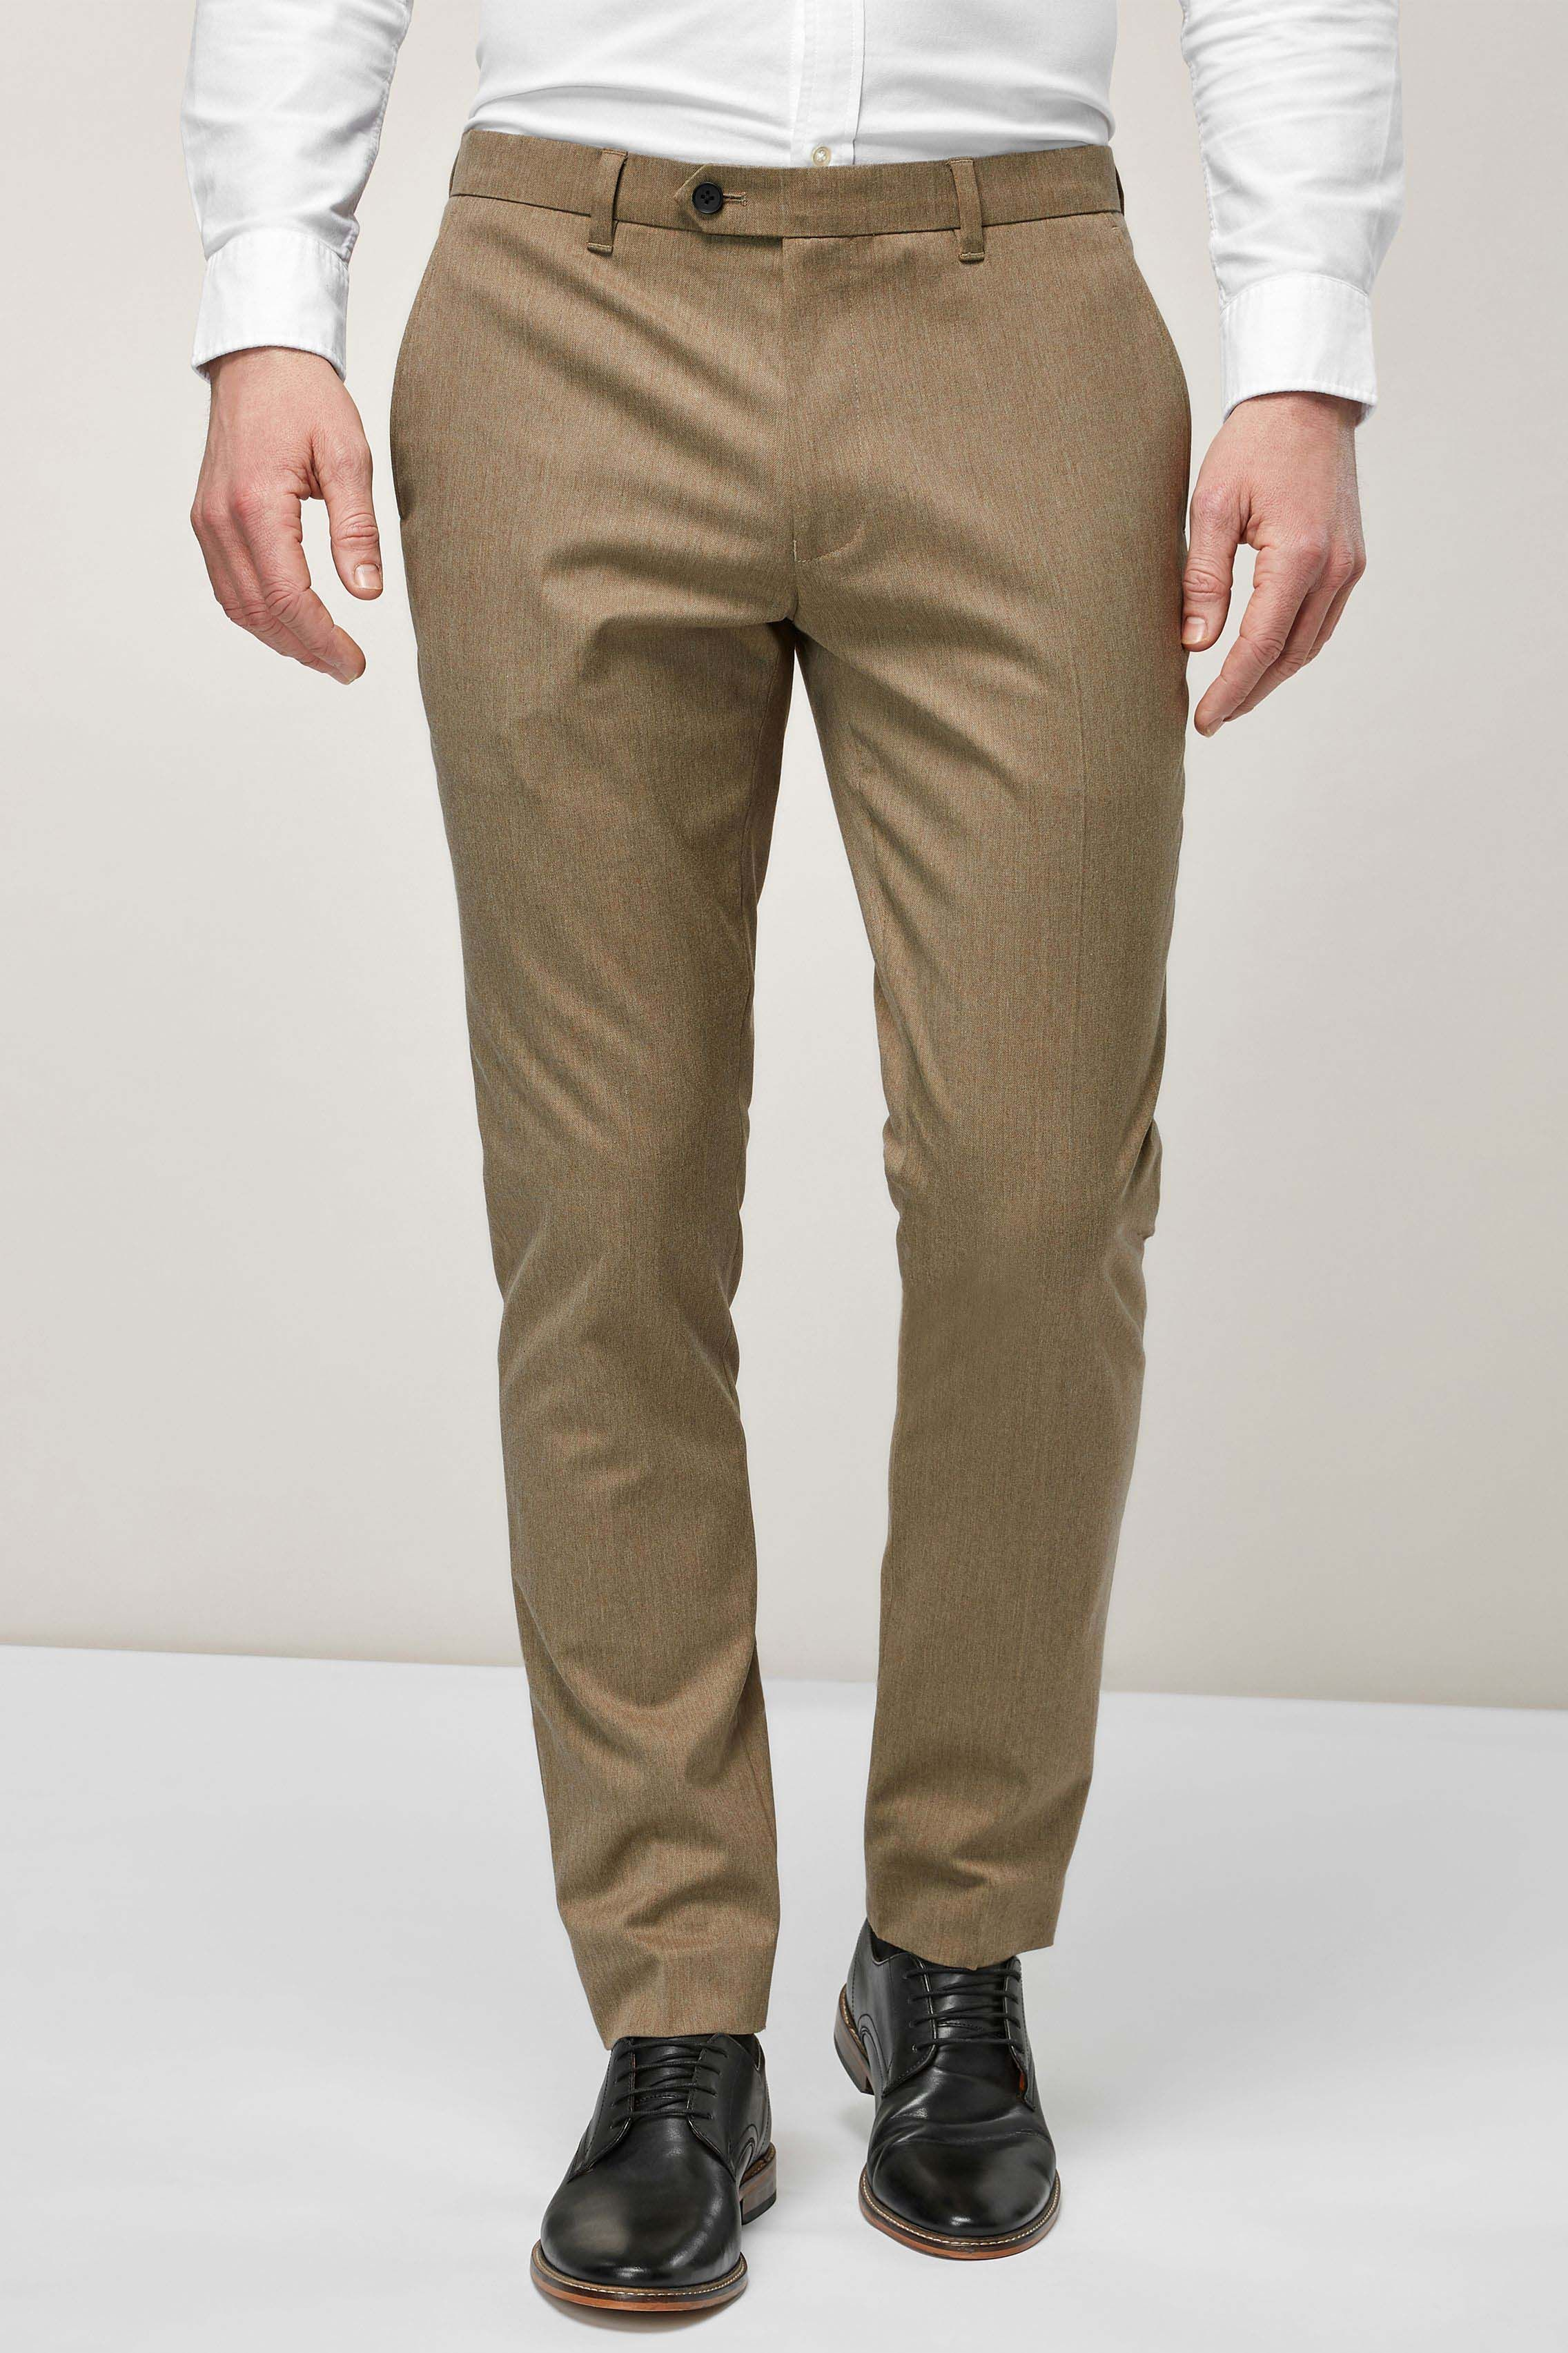 2ee367a8a Mens Next Navy Regular Fit Trousers With Stretch - Blue | Products ...